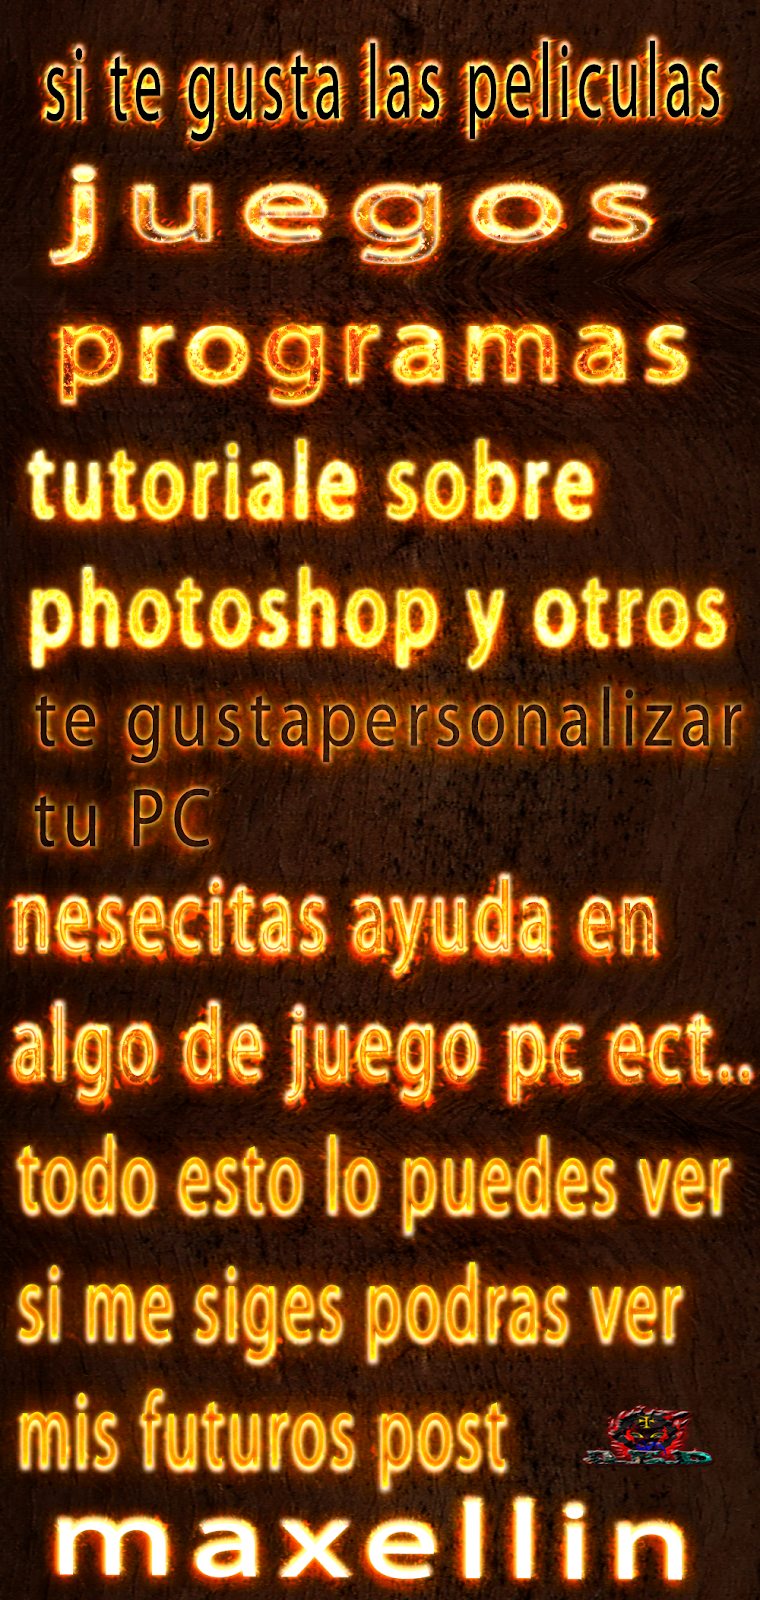 [Truco] Capturar Pantallas del Ordenador en Windows XP